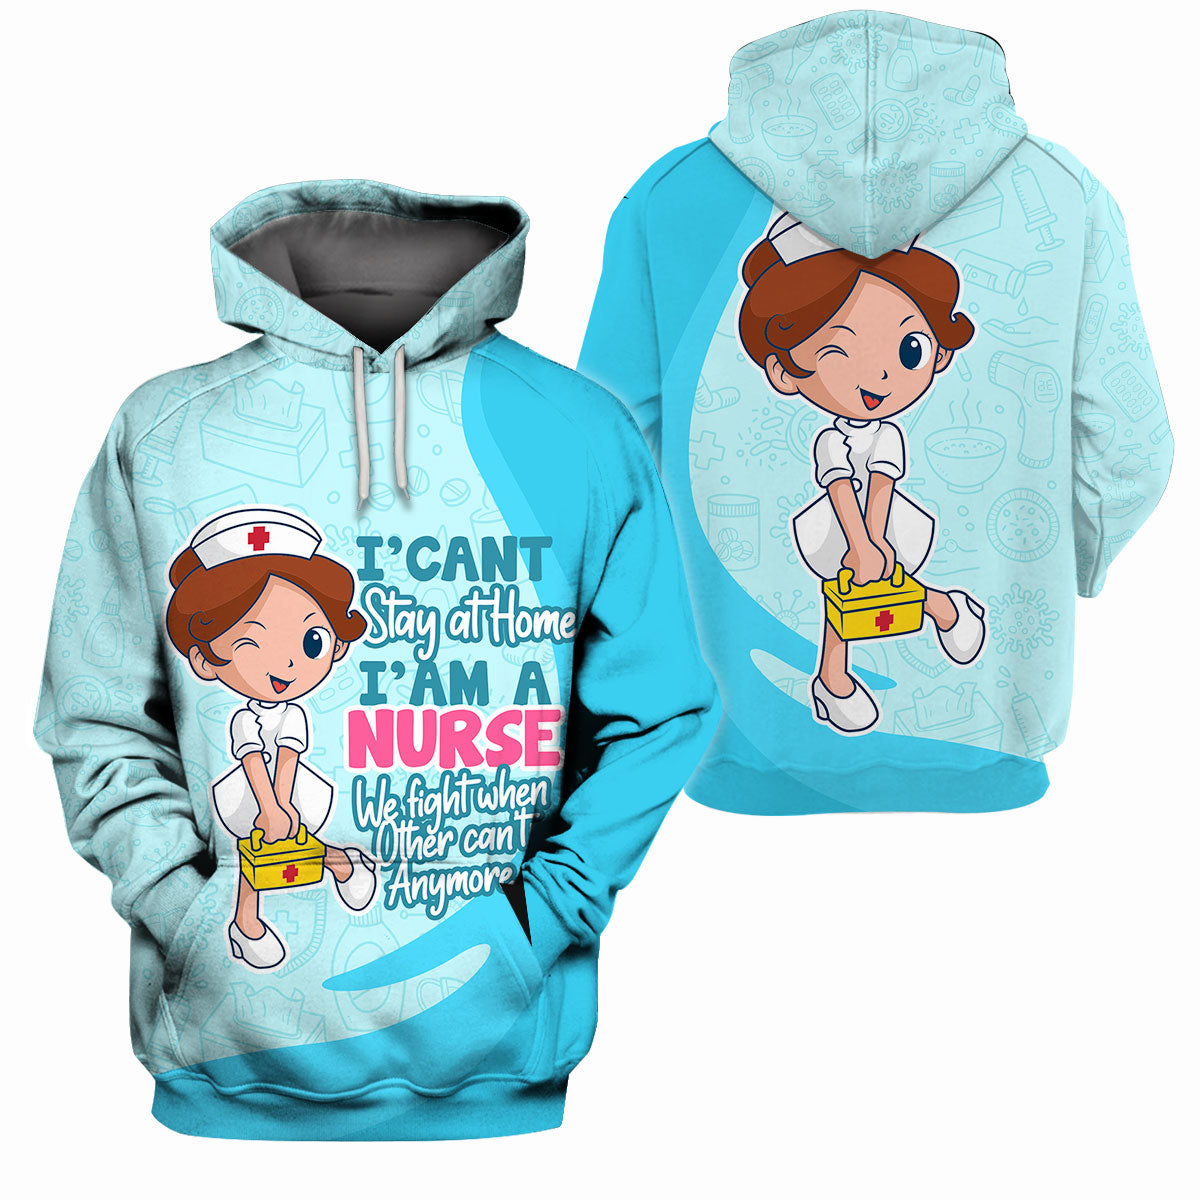 Nurse Clothing - All Over 3D Printed - I Can't Stay At Home I'am A Nurse - GnWarriors Clothing